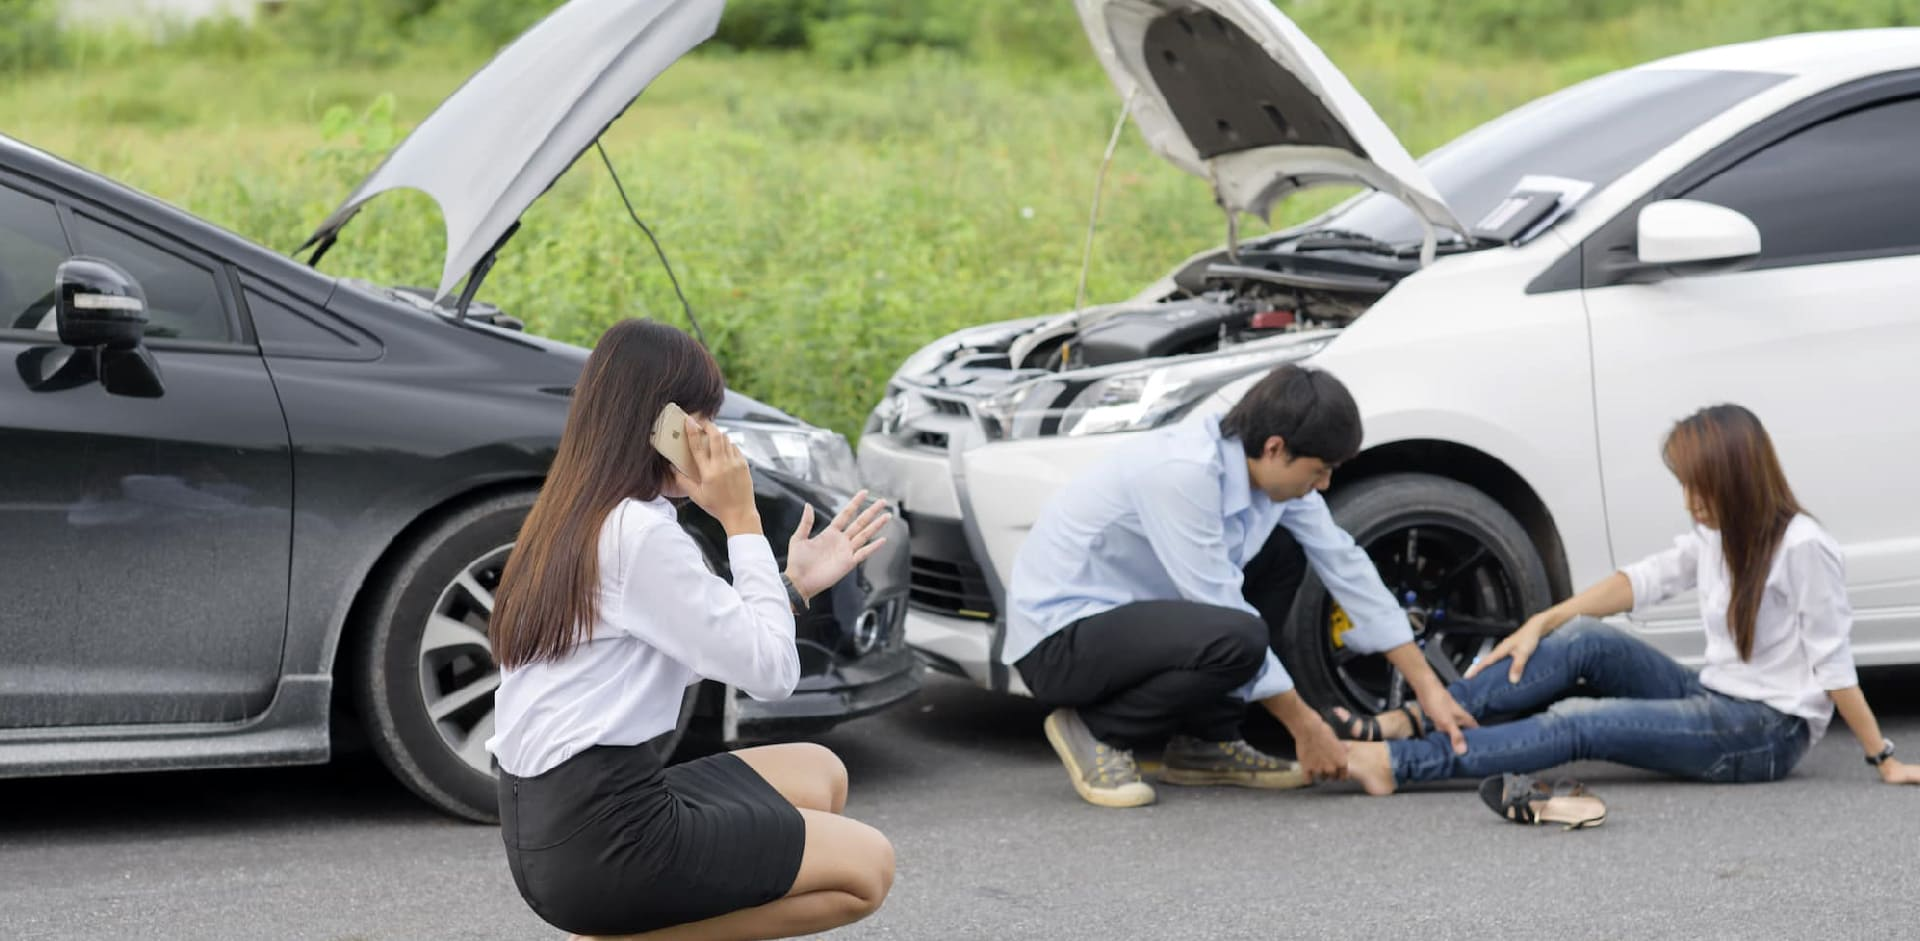 health insurance car accident injuries